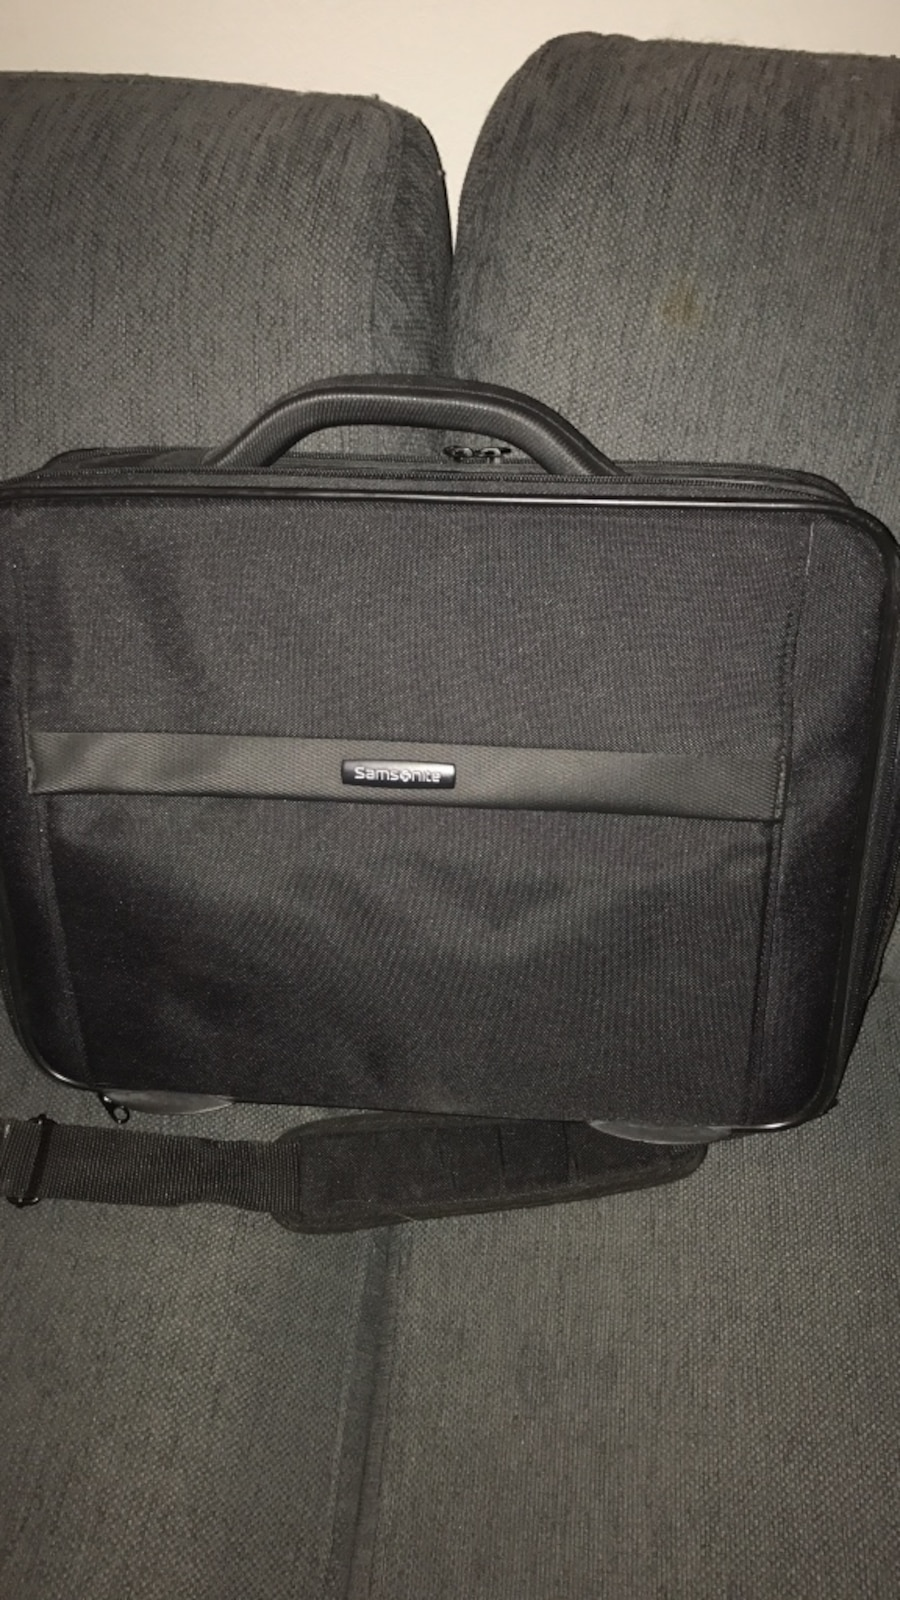 Samsonite PC-veske